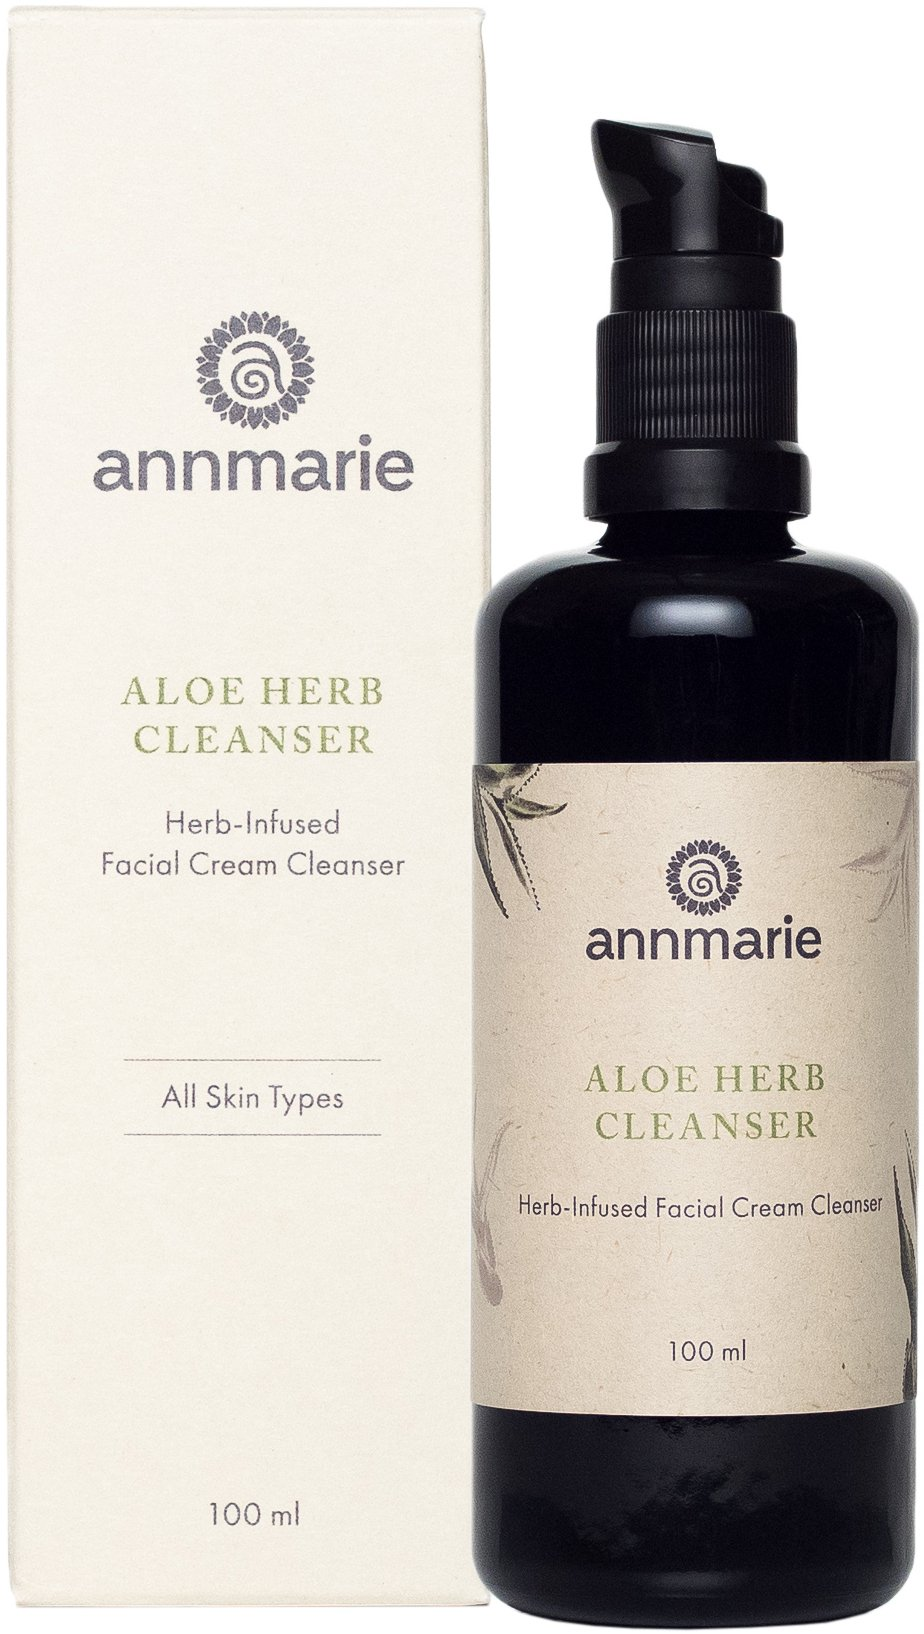 Annmarie Skin Care Aloe-Herb Facial Cleanser - Gentle Cleanser with Aloe Vera, Coconut Oil + Calendula, Suitable for All Skin Types (100 Milliliters, 3.4 Fluid Ounces)